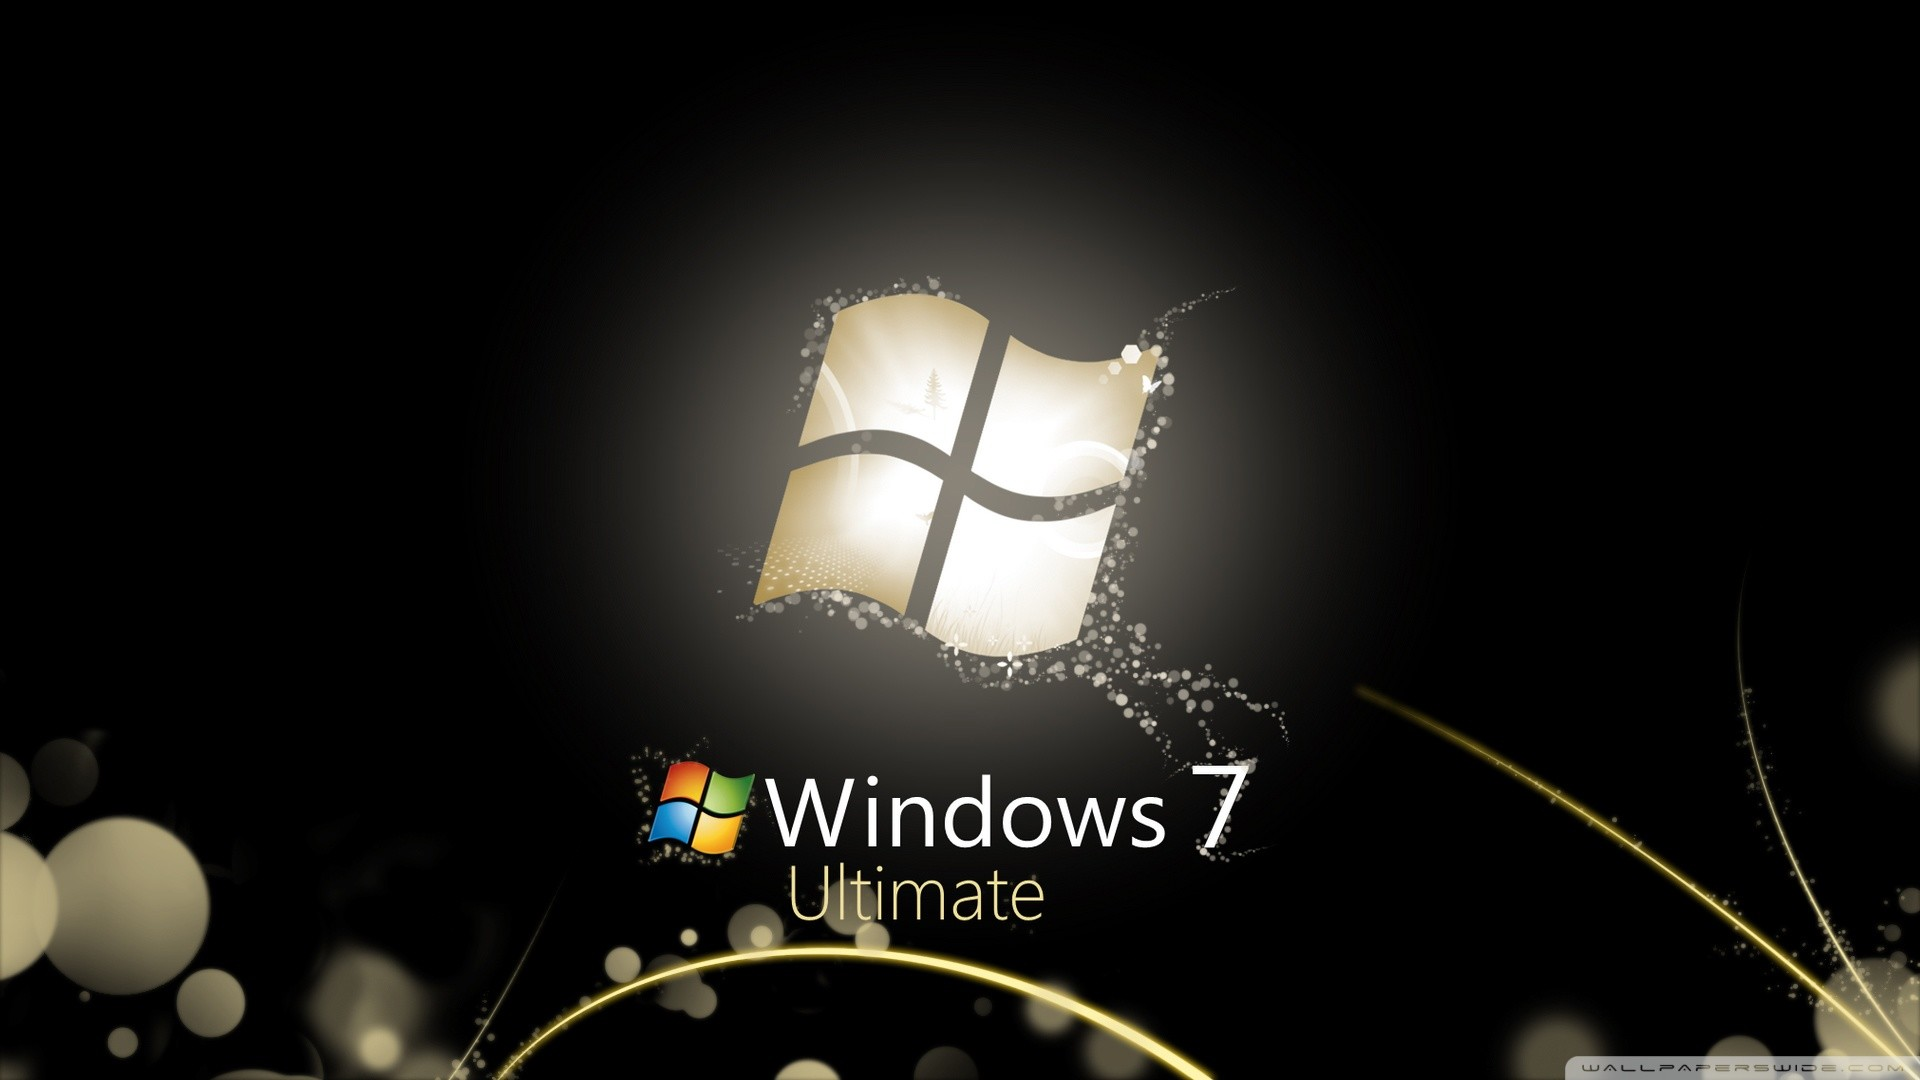 Hd Wallpapers For Windows 7 82 Pictures